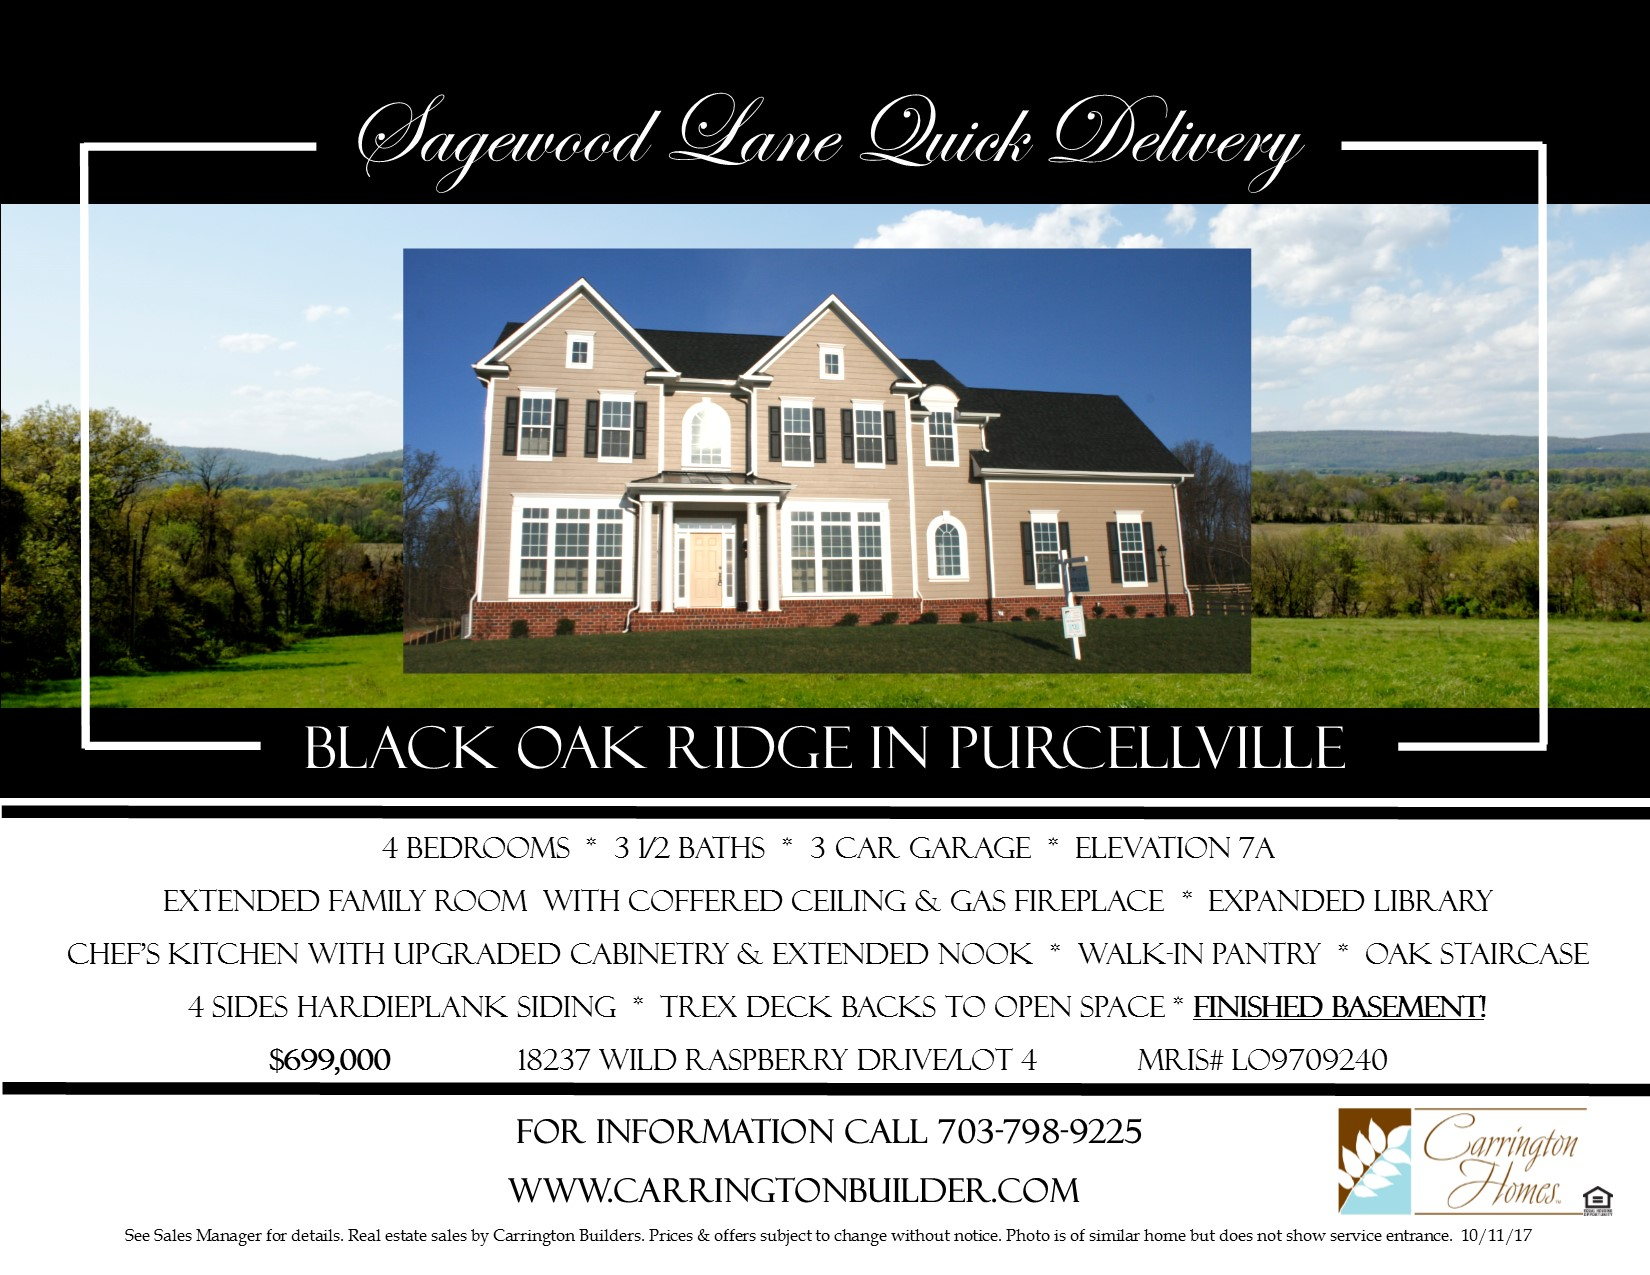 Immediate Delivery Home at Black Oak Ridge in Purcellville – Carrington Homes Floor Plans